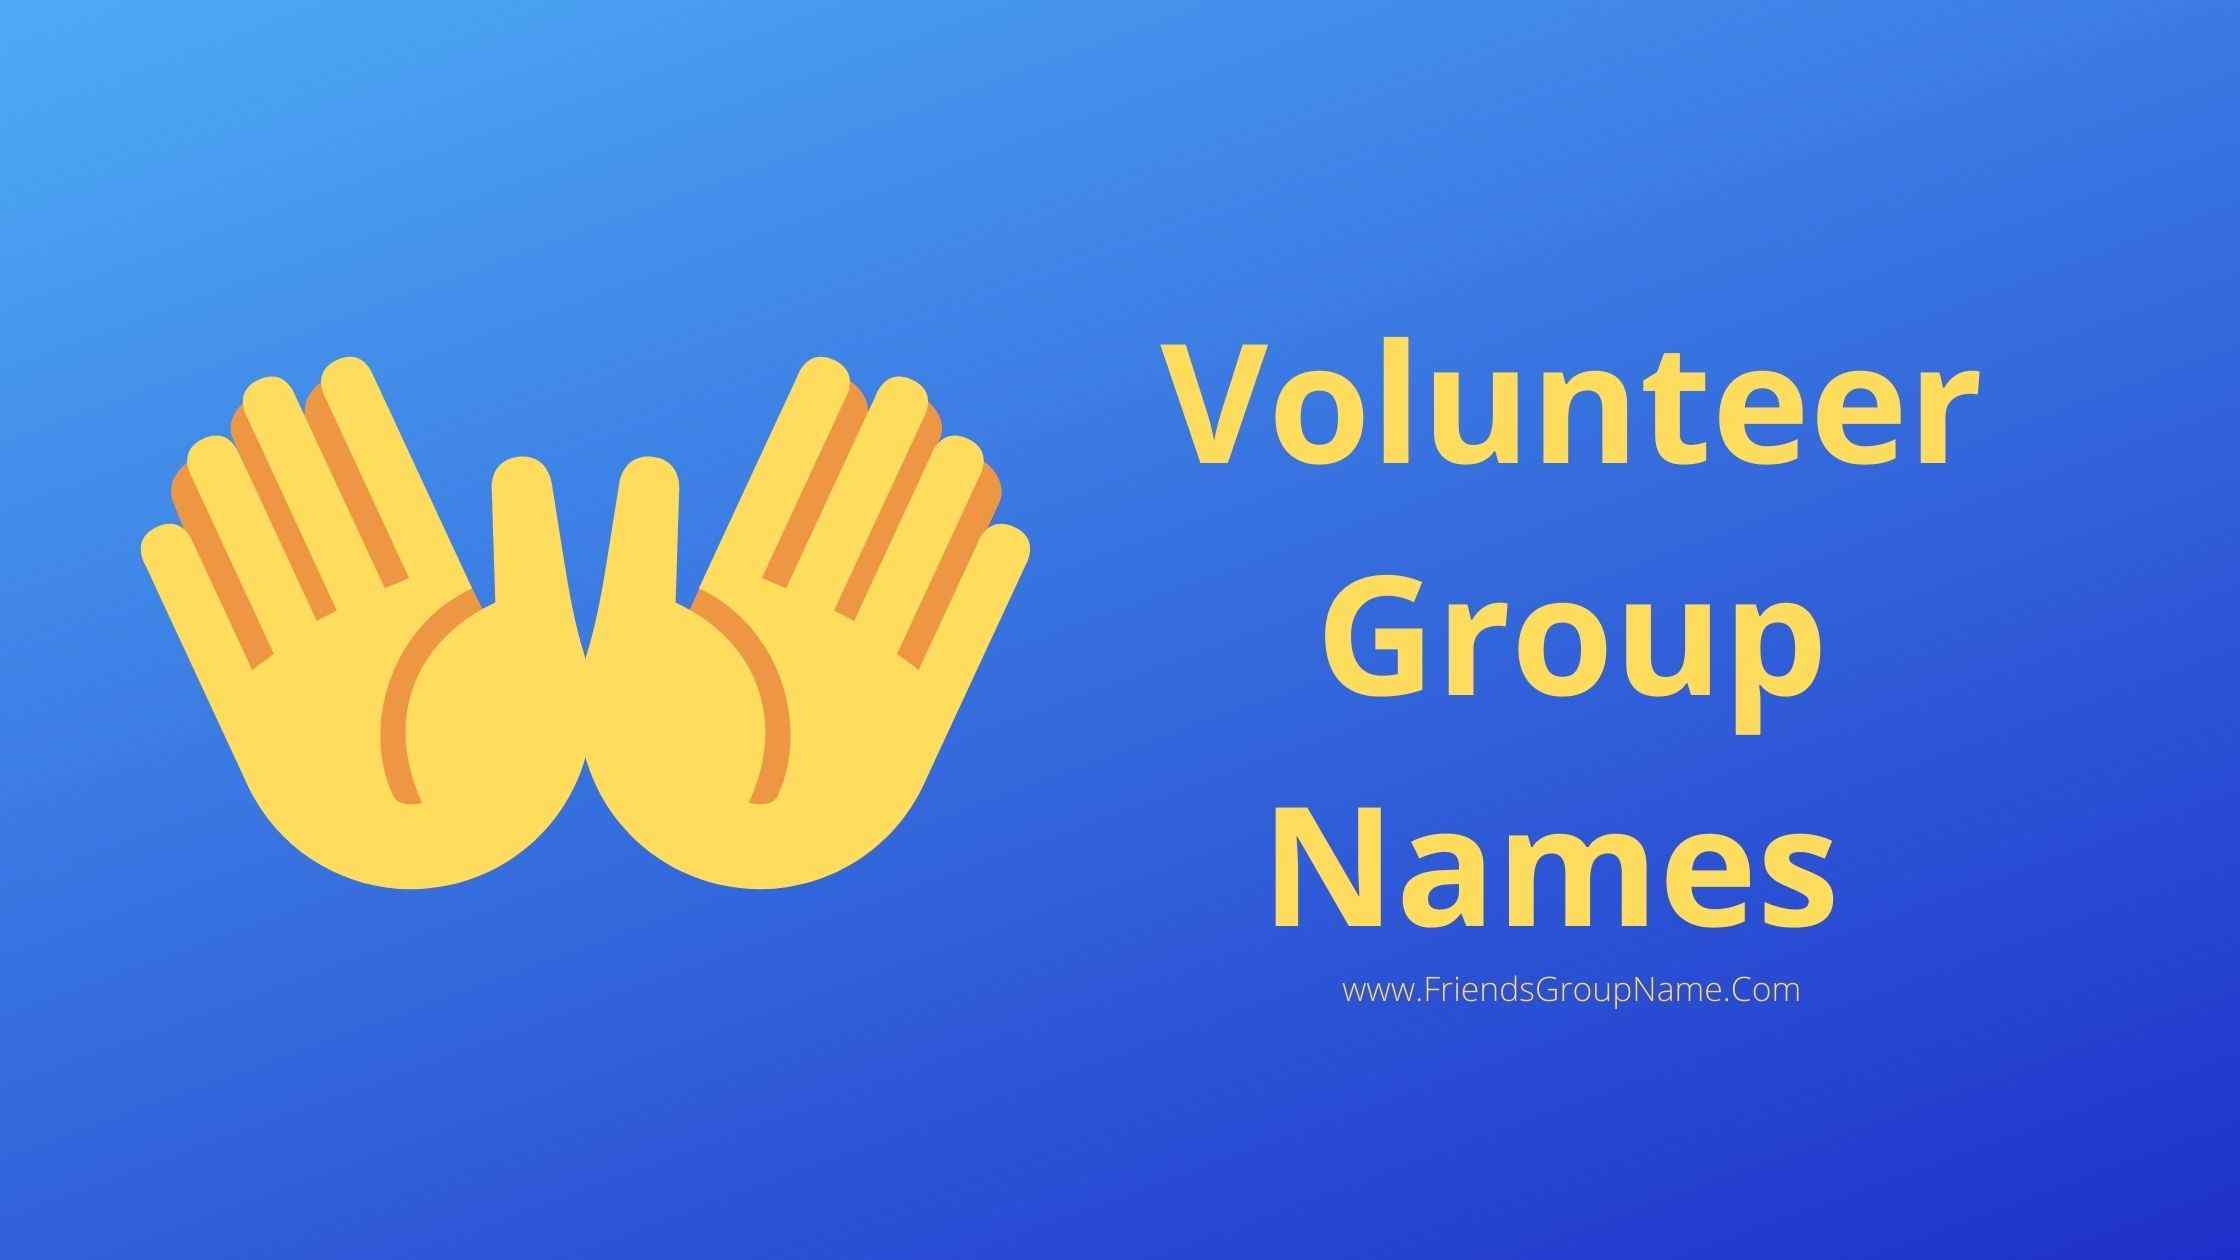 Volunteer Group Names